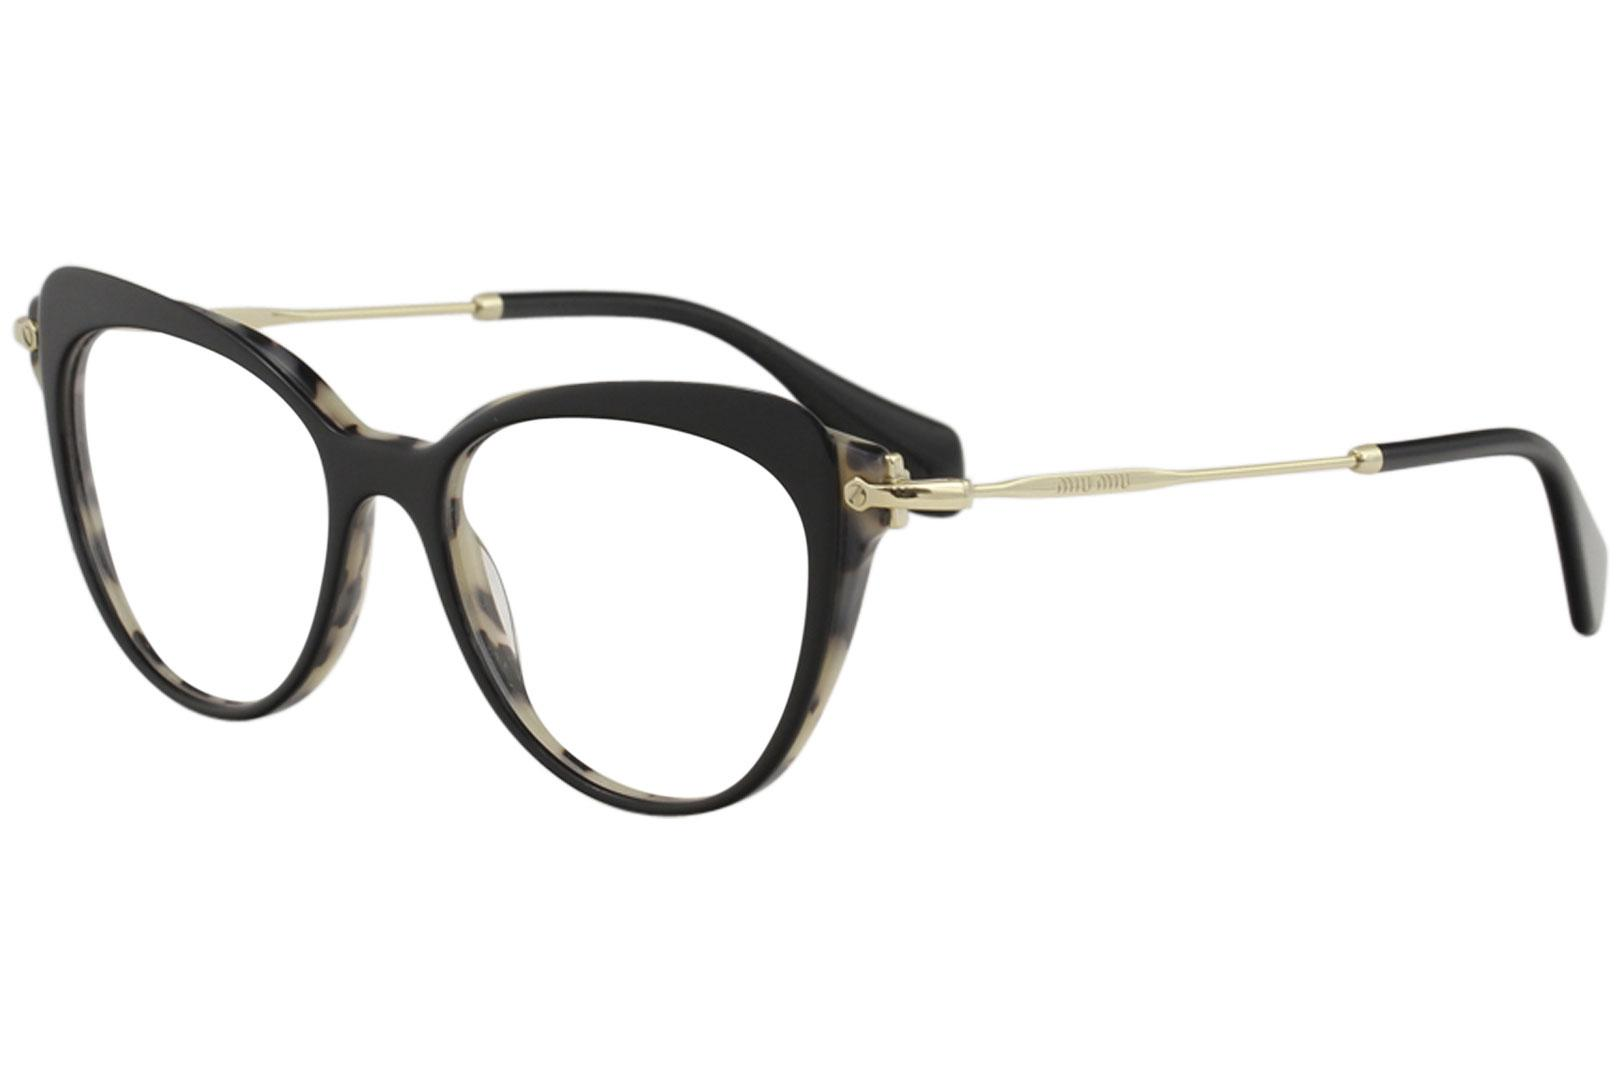 Image of Miu Miu Women's Eyeglasses VMU01Q VMU/01Q Full Rim Optical Frame - Black - Lens 52 Bridge 17 B 44 ED 57.4 Temple 140mm